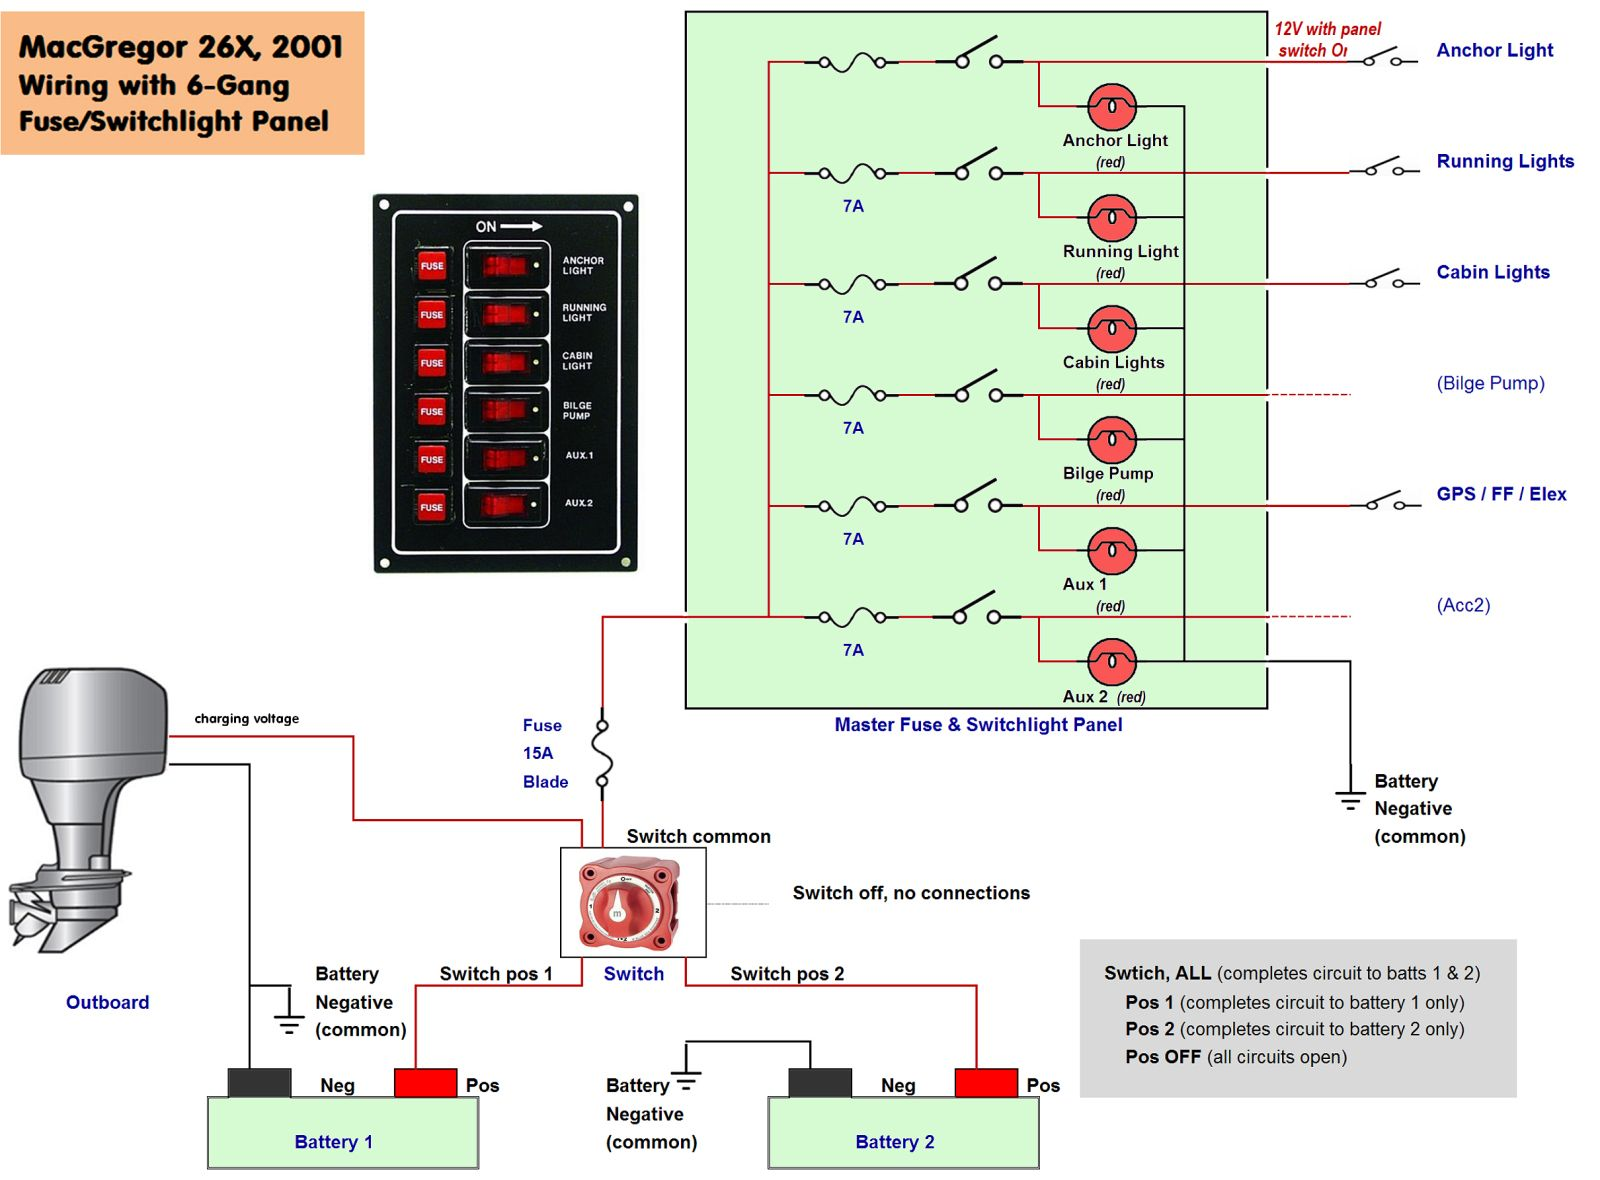 6-pin-dpdt-switch-wiring-diagram-for-navigation-lights-9 Navigation Anchor Light Switch Wiring Diagram on